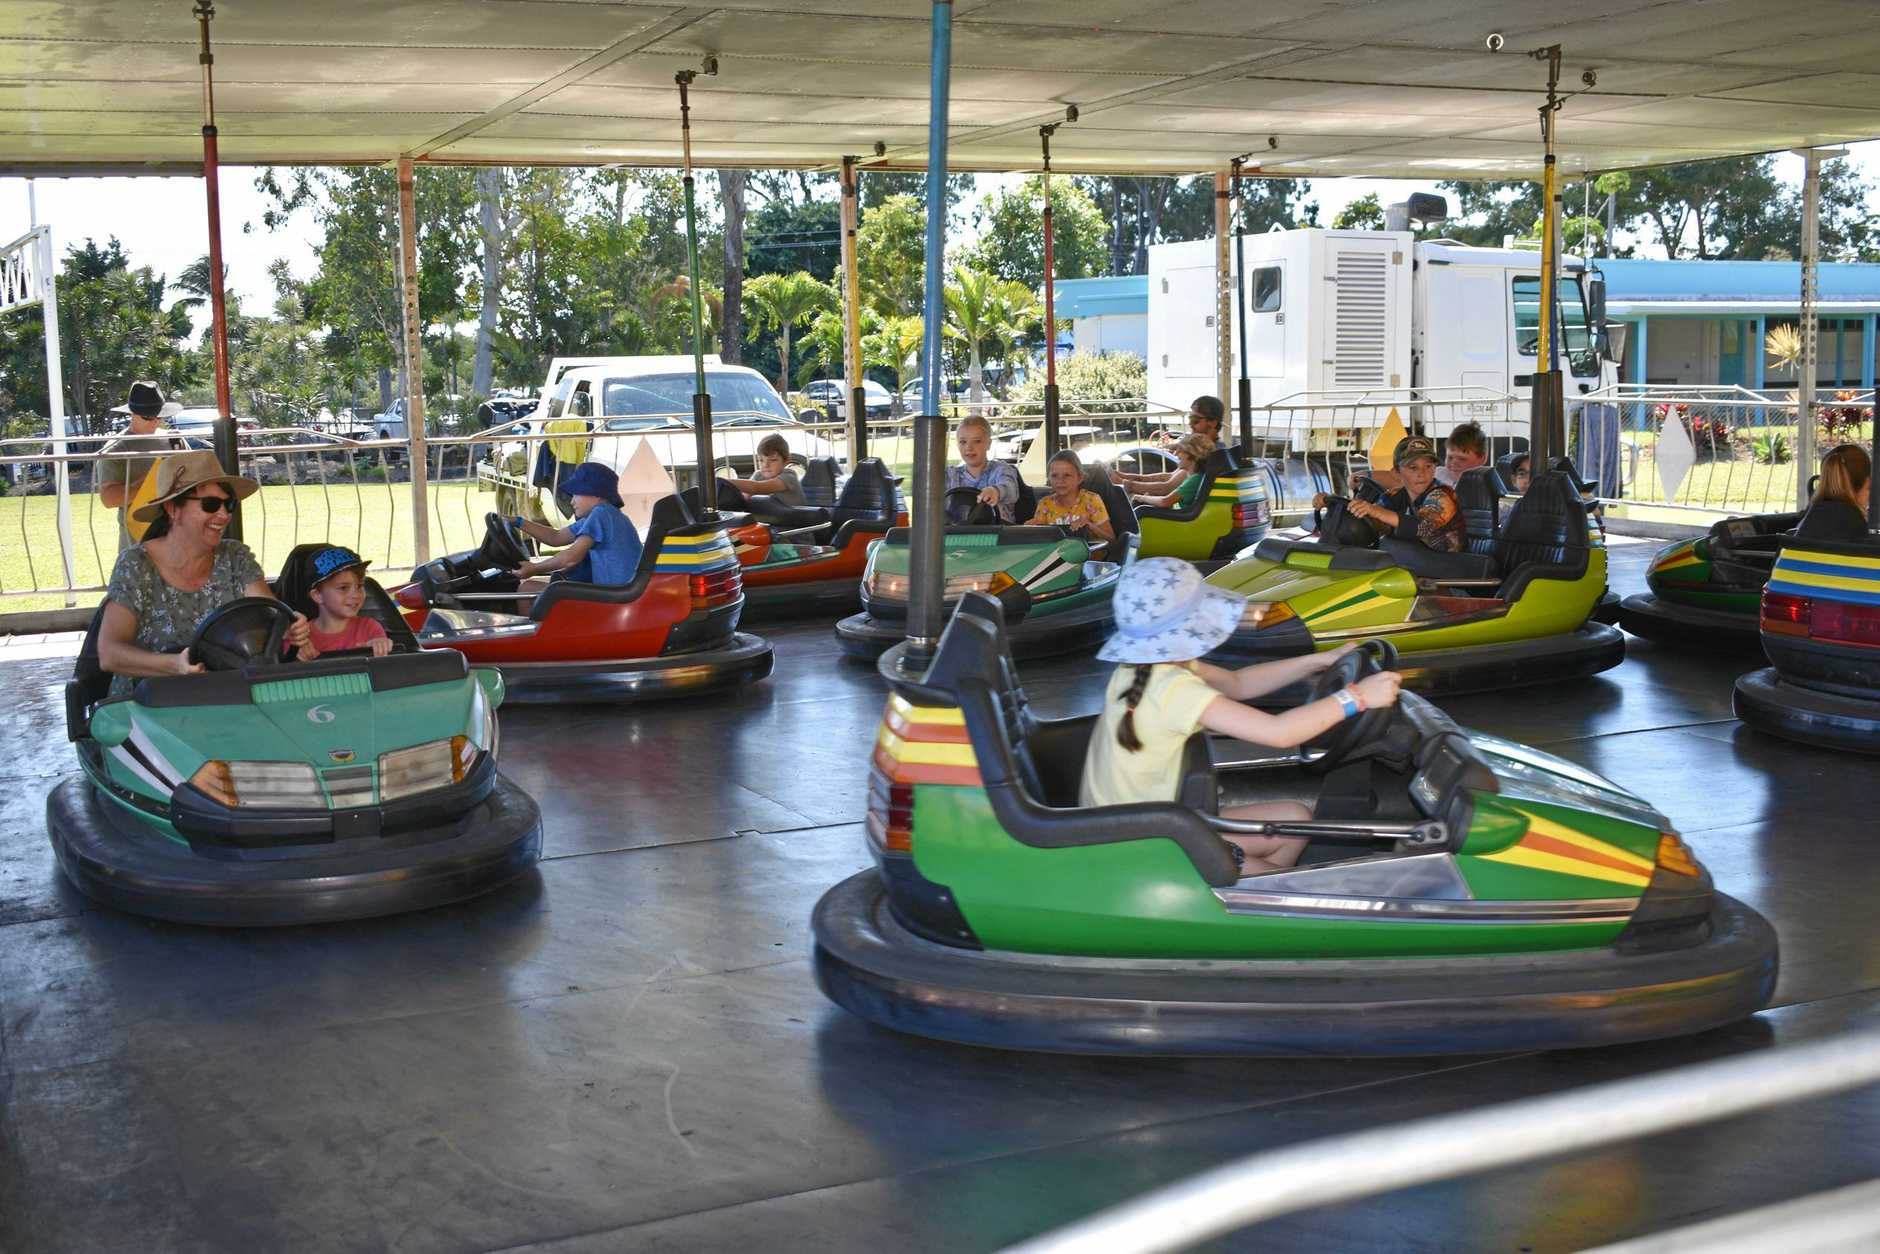 The dodgem cars proved popular at the Cannonvale State School Fete.